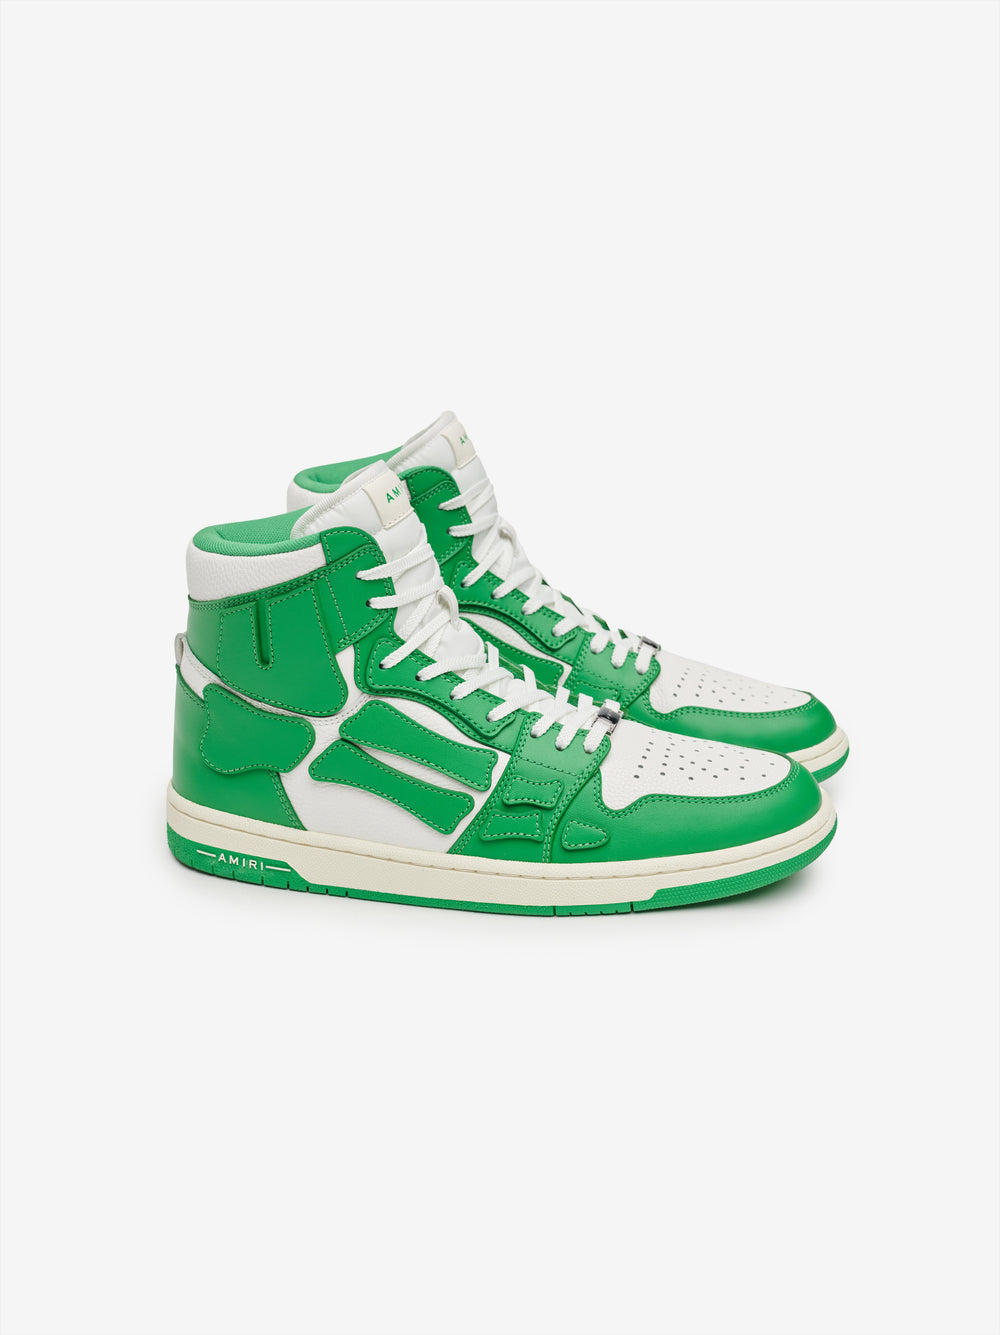 SKEL TOP HI - GREEN / WHITE